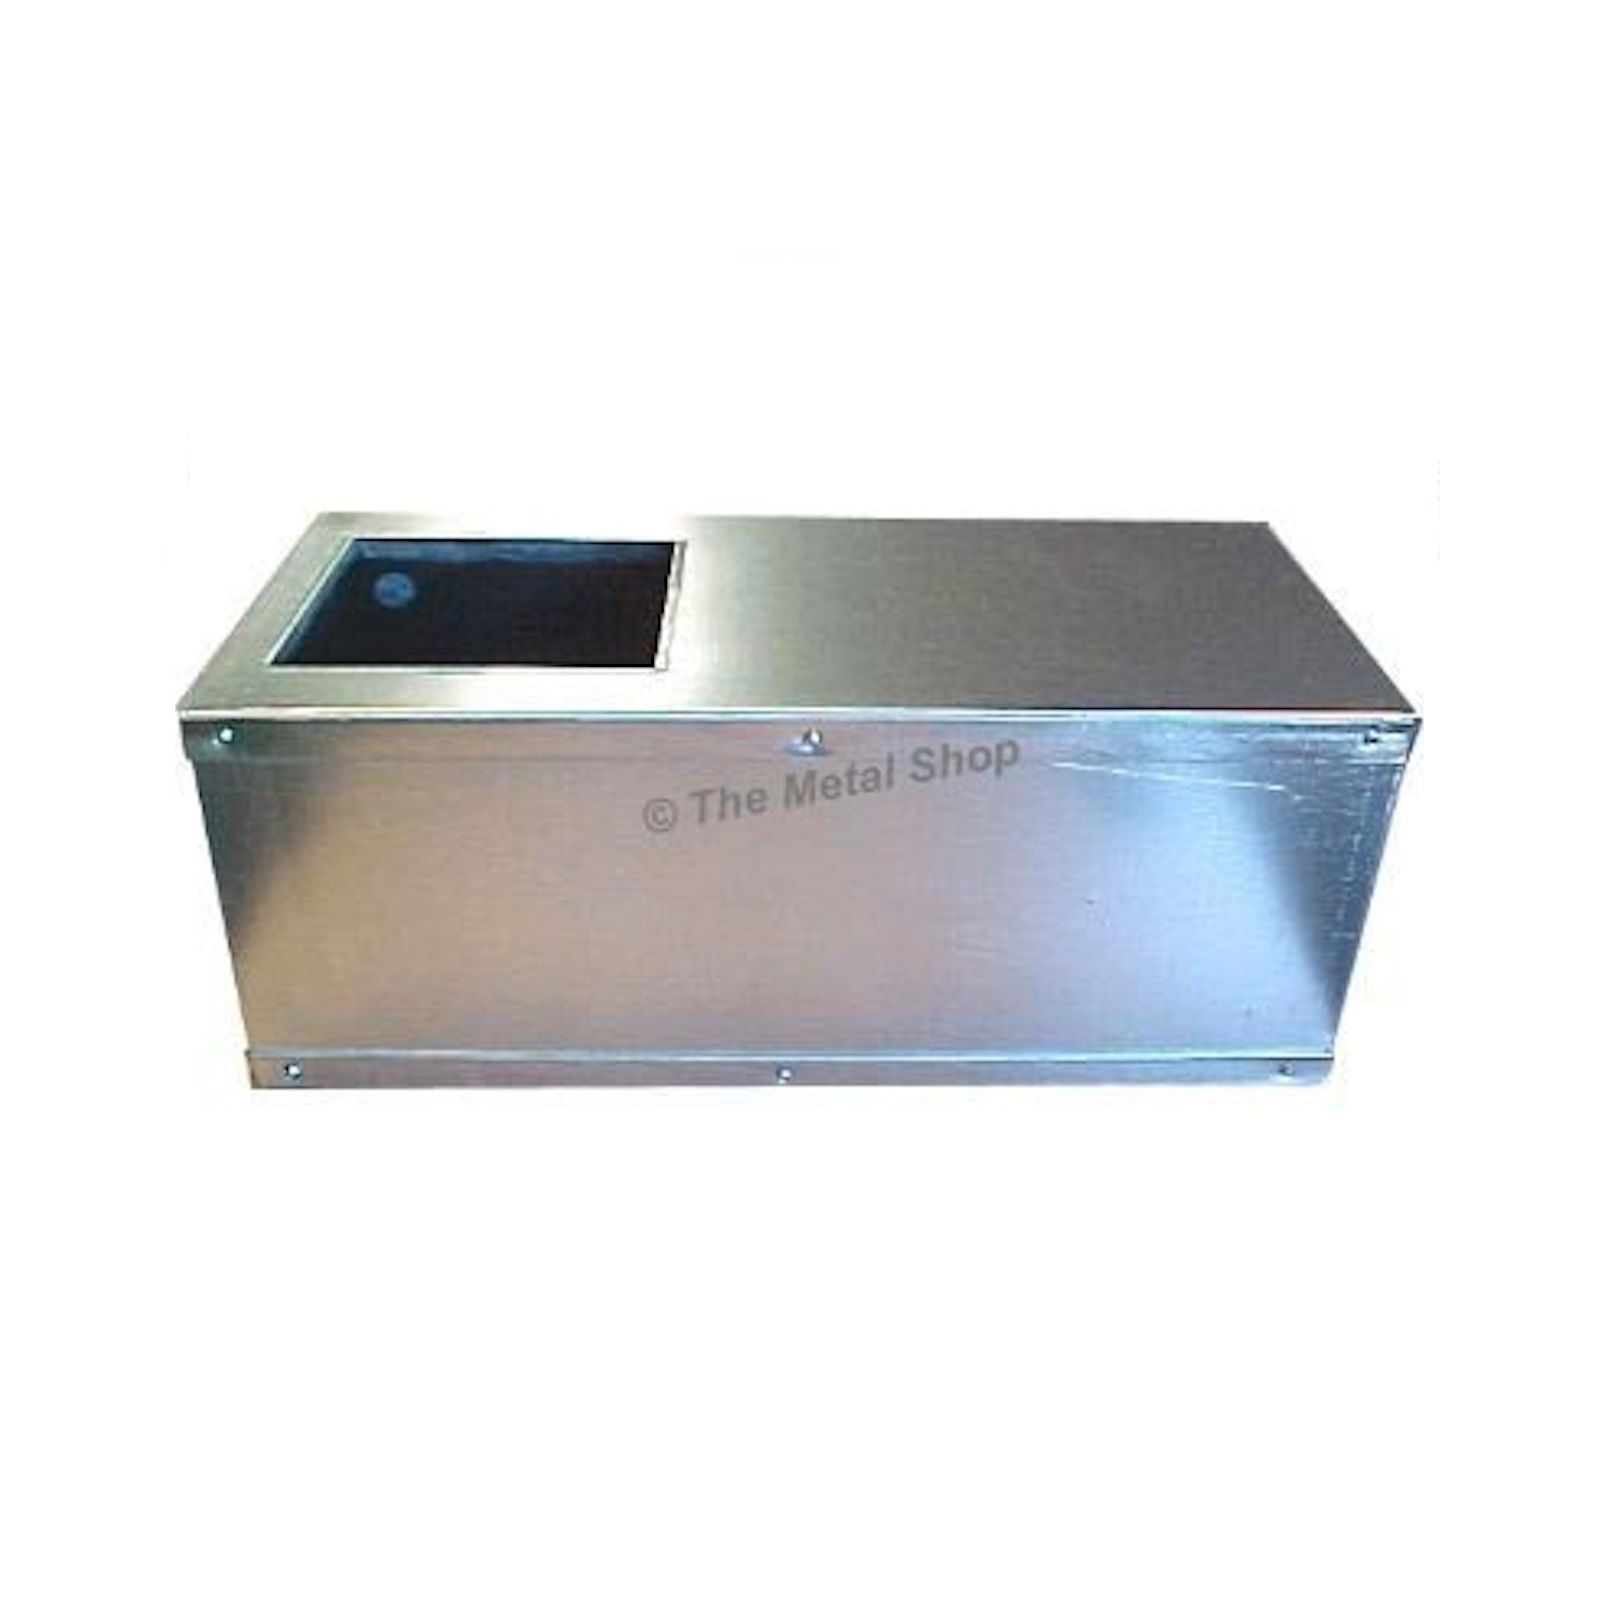 "The Metal Shop 003-512 - Gas Furnace Coffin Box 46"" W X 28"" D X 19"" H"